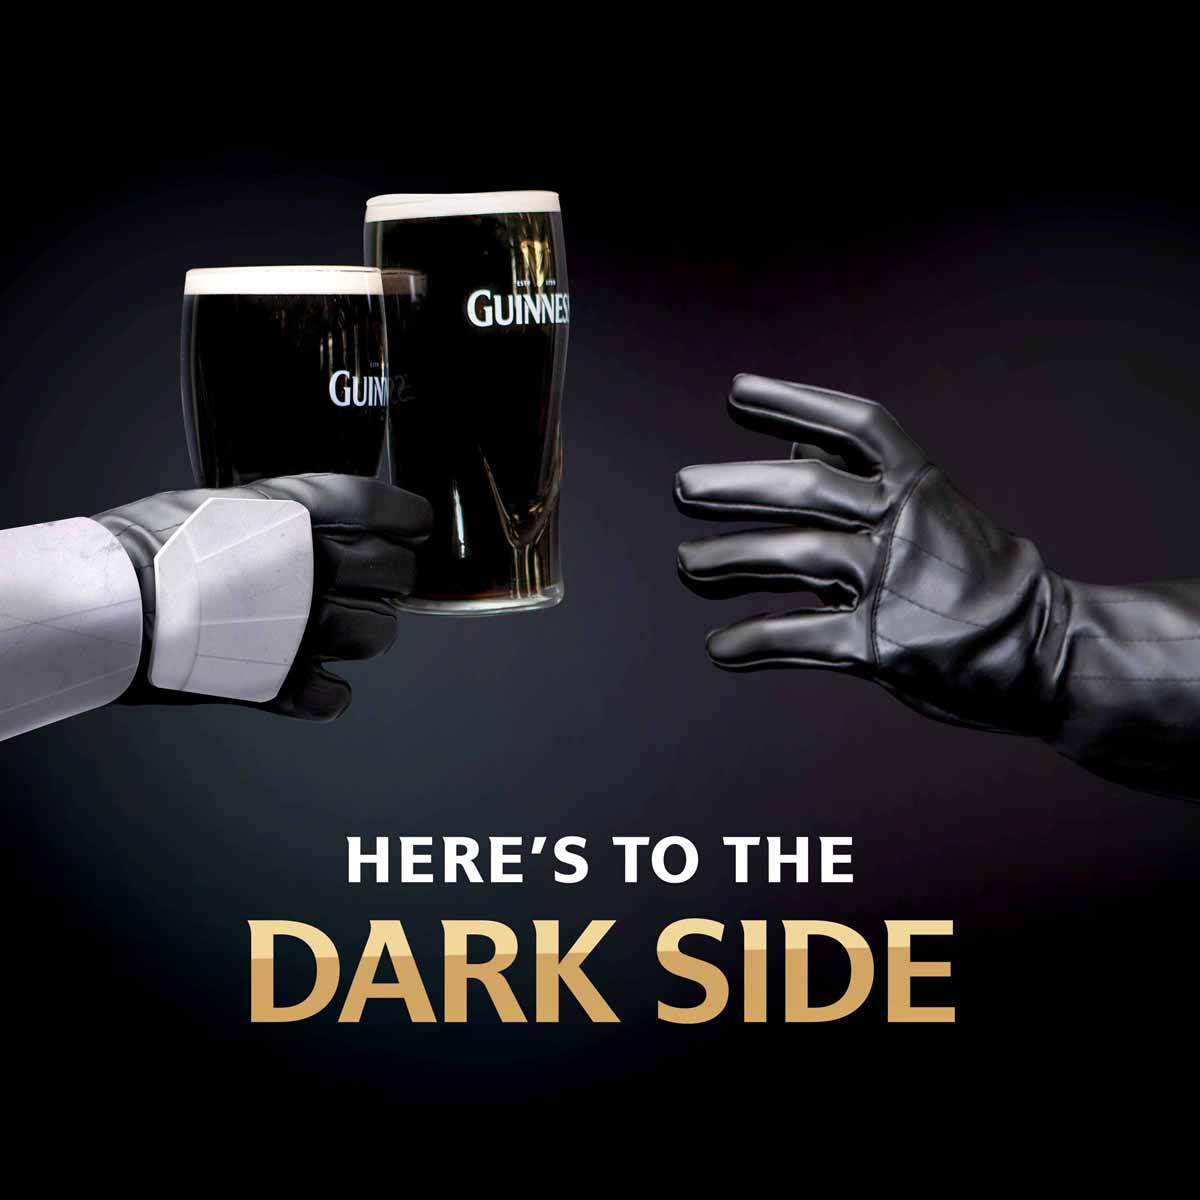 Star-Wars Guinness